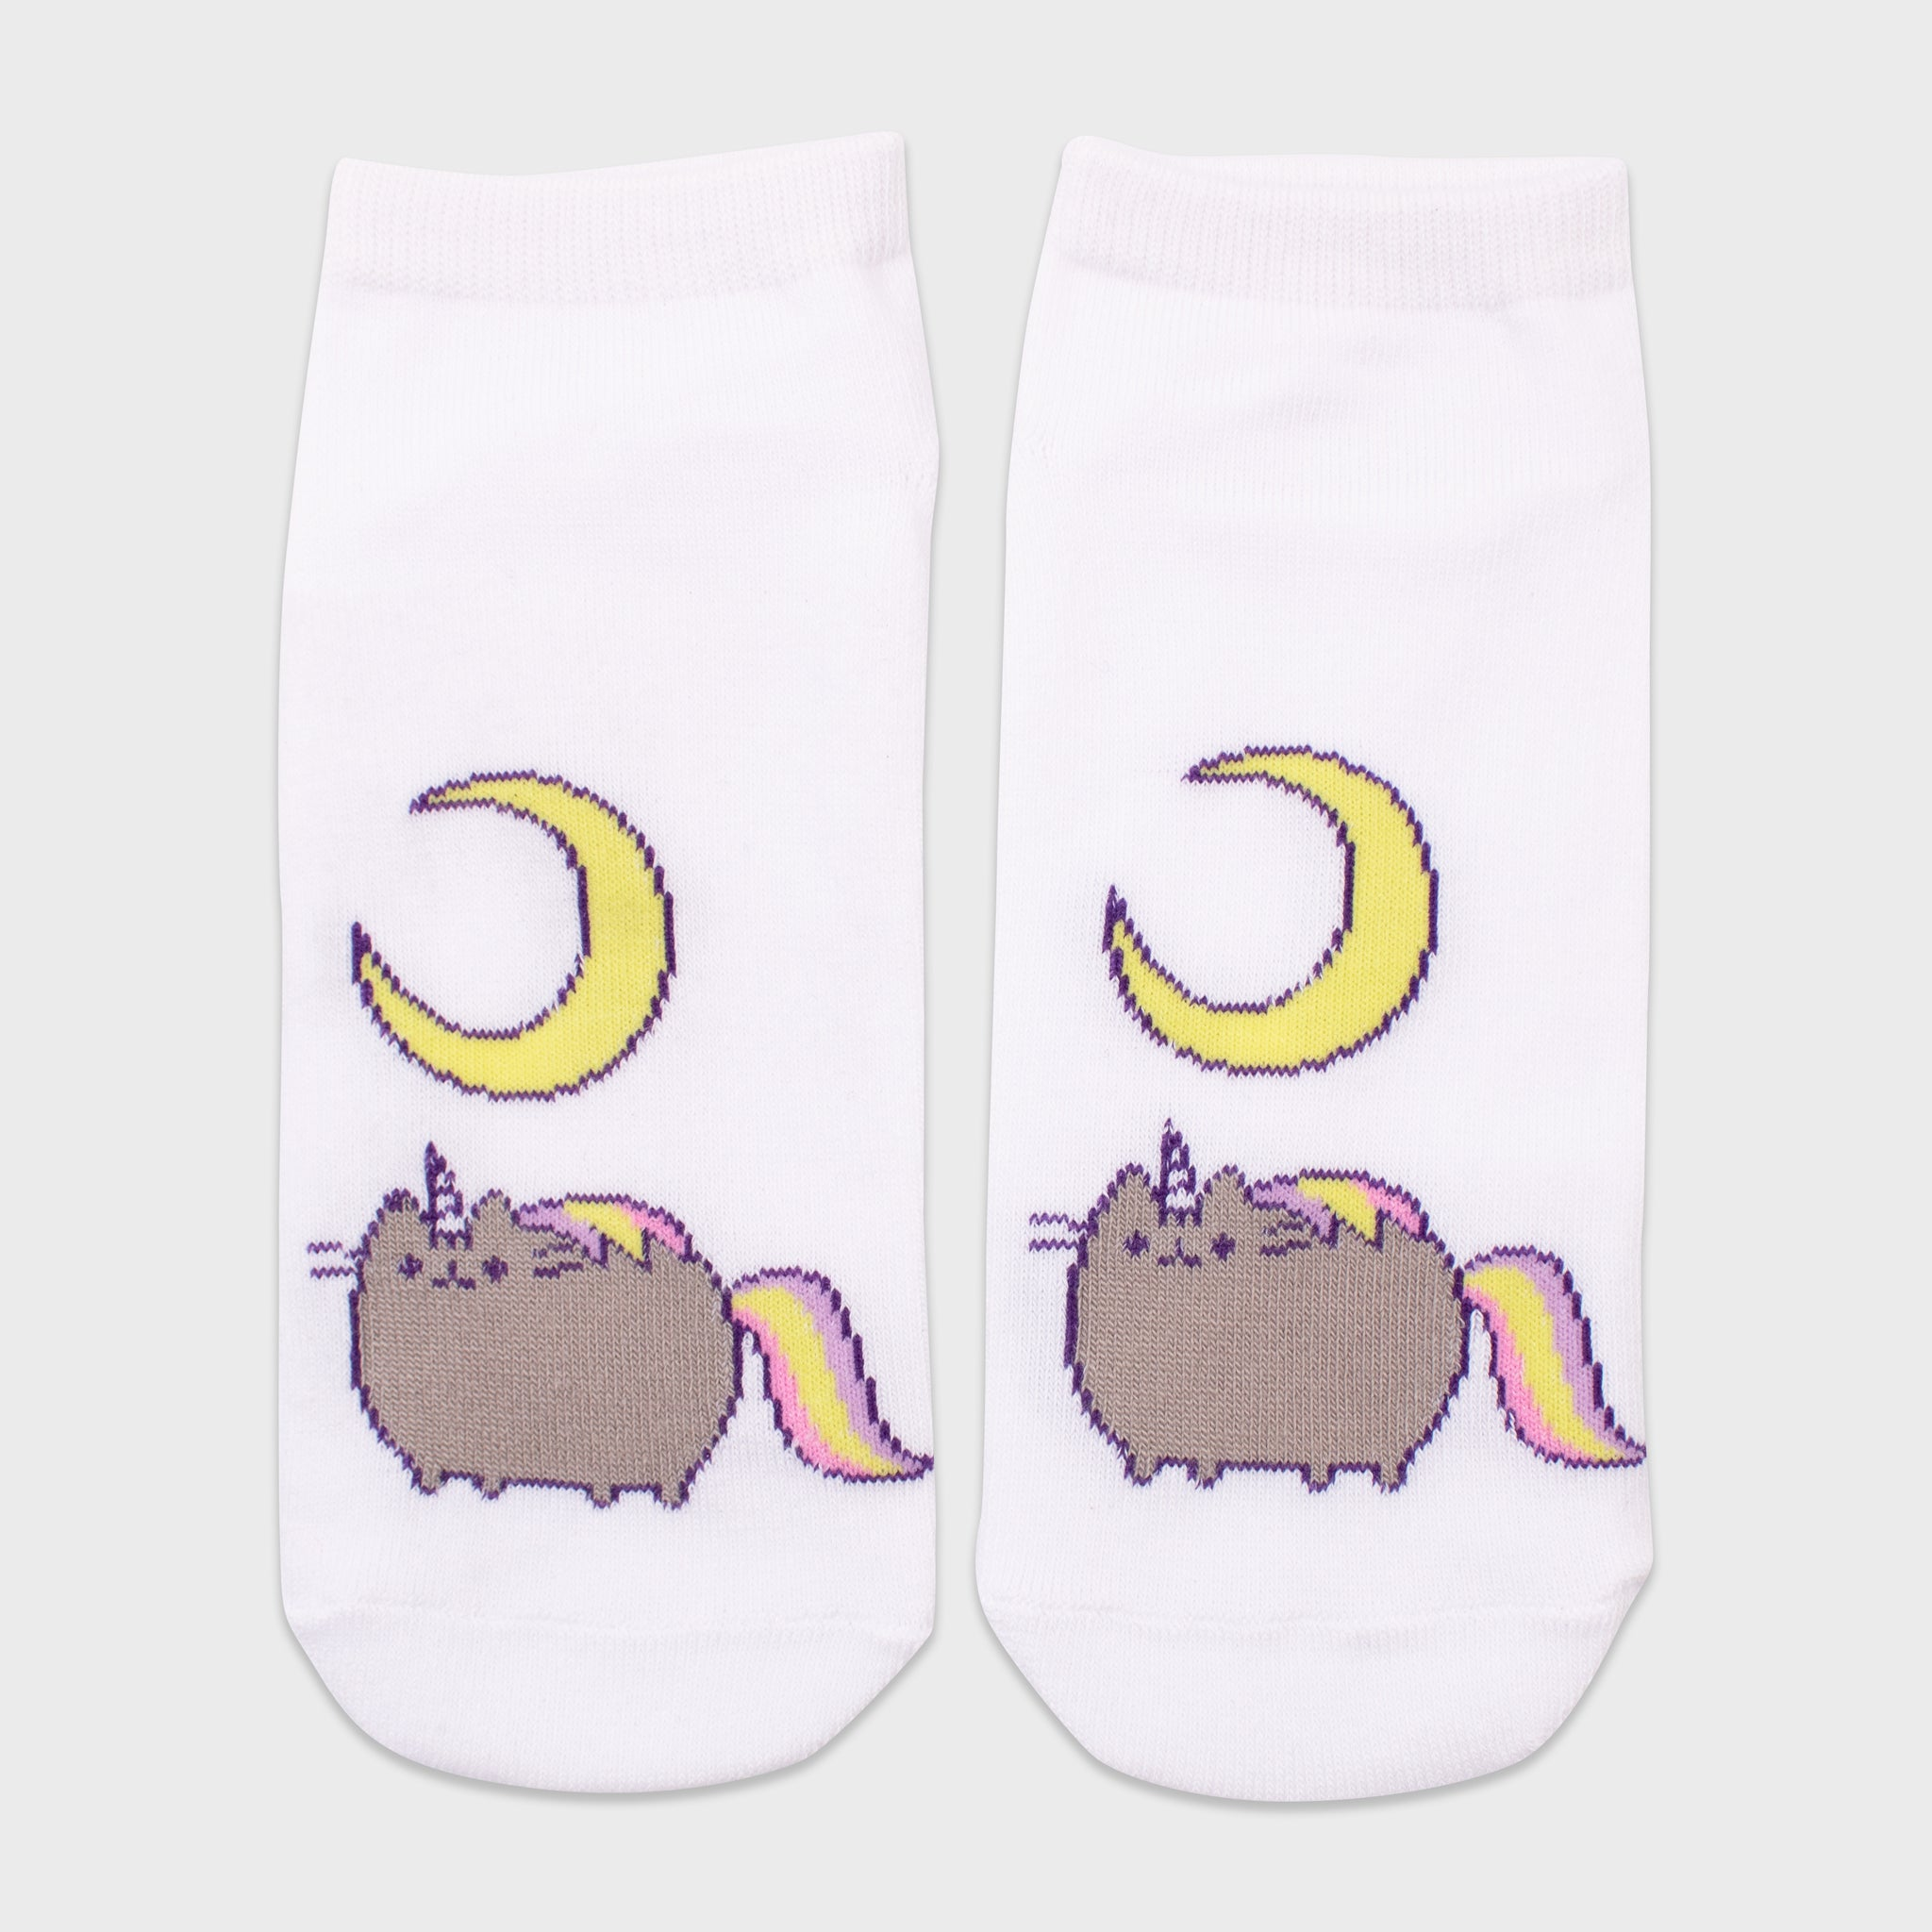 pusheen socks 2 pack pair unicorn pusheenicorn pink apparel accessory cute cat culturefly